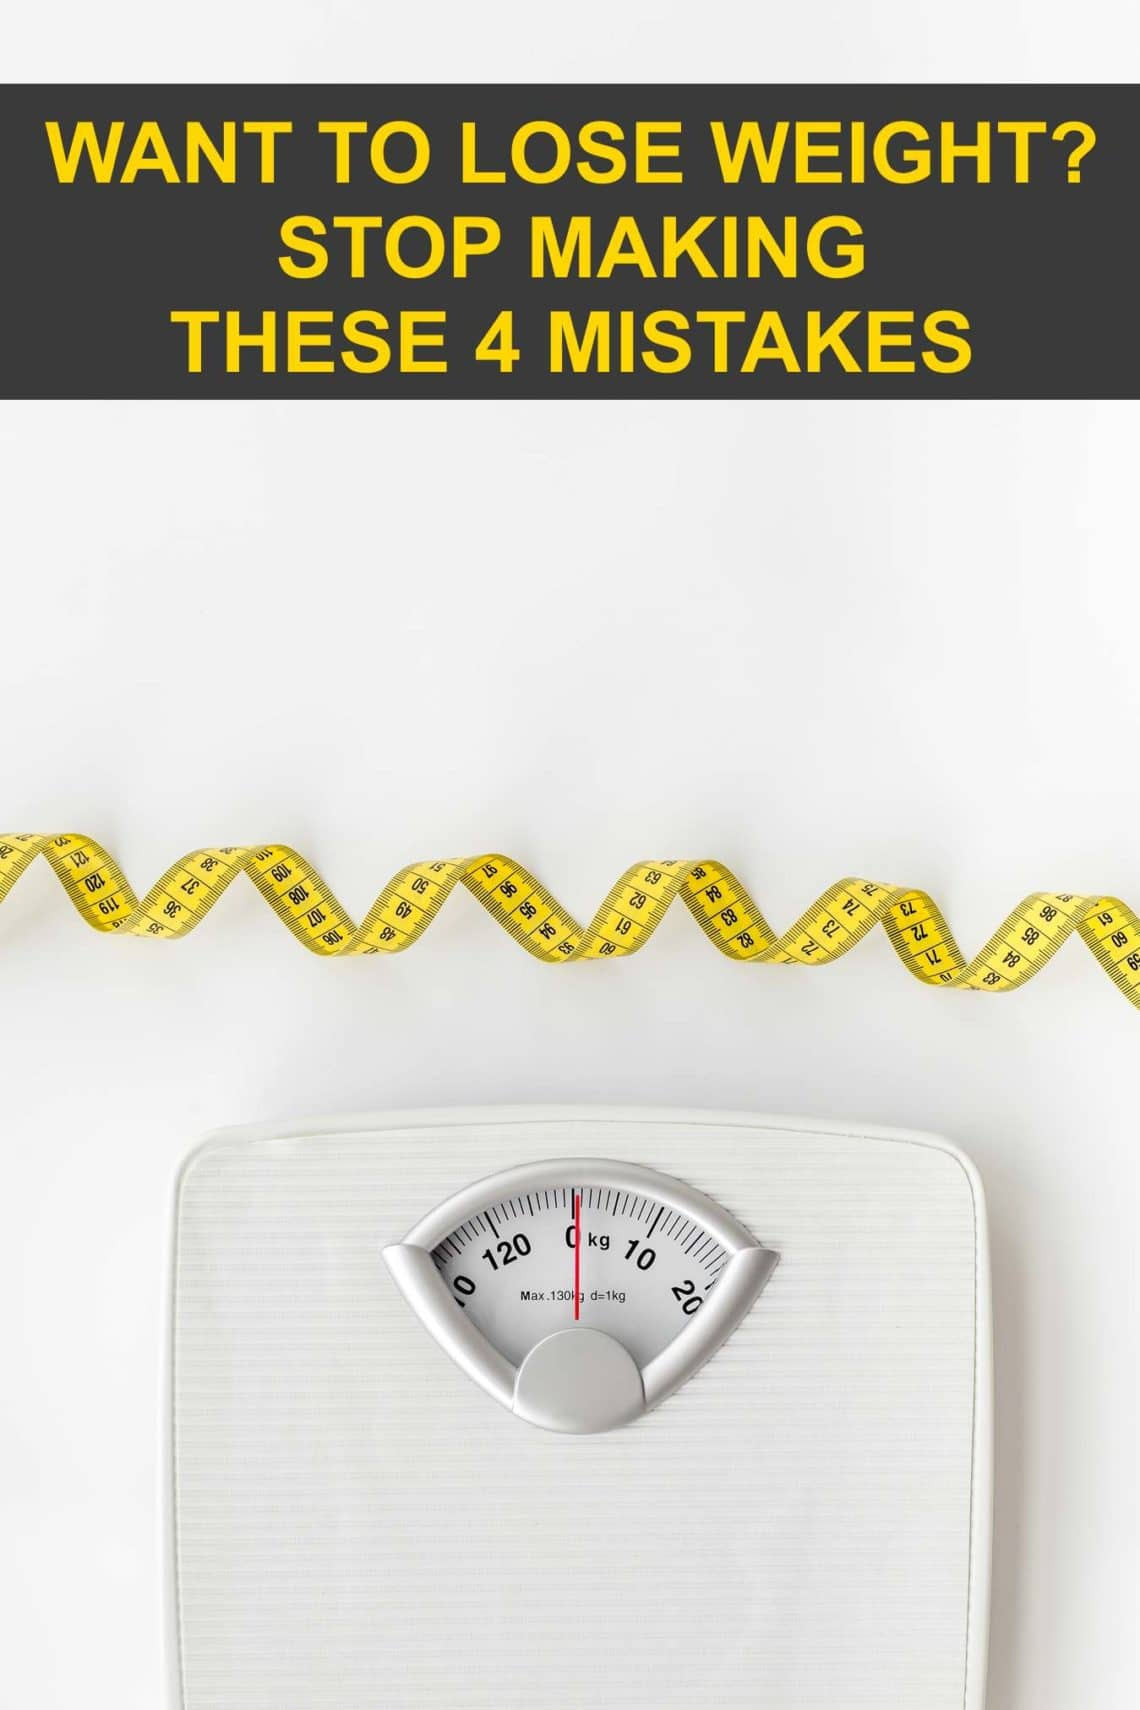 According to studies, almost eighty percent of people regain the weight they`d lost in no more than five years of losing it.